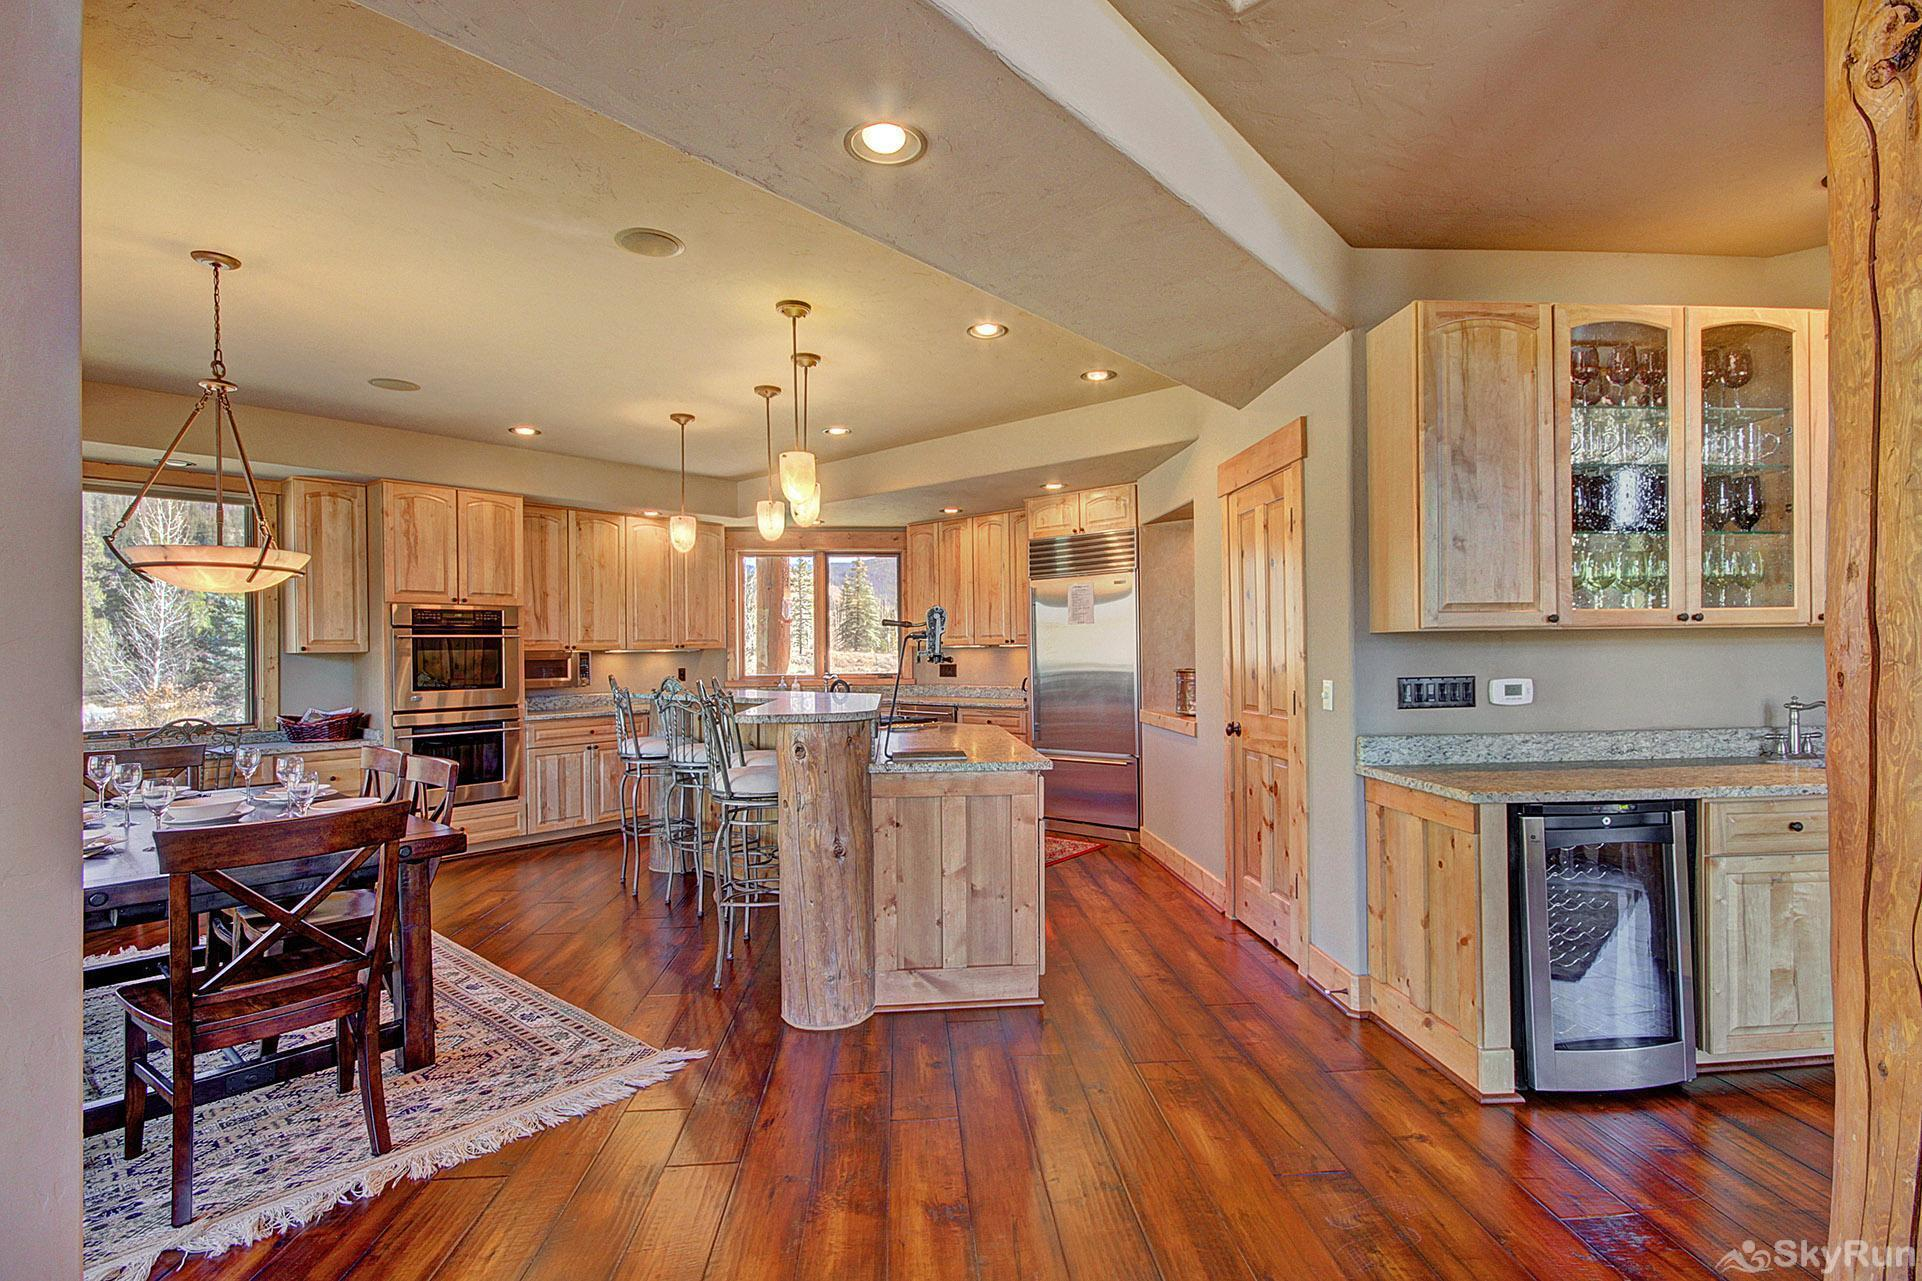 Buffalo Lodge Granite counters and stainless appliances